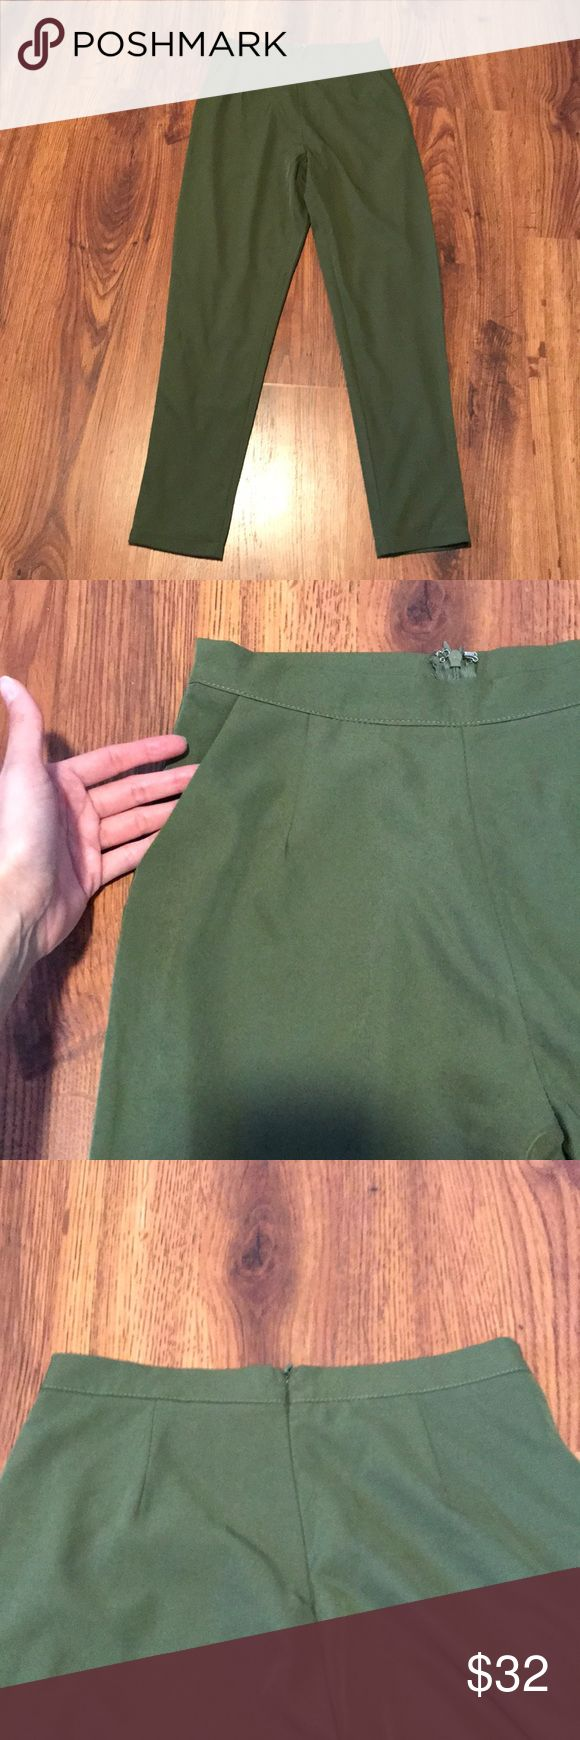 Olive green high-wasted pants GREAT CONDITION - worn once - looks like new. Olive green high-wasted, skinny pants. Zipper closer on back. Pockets shown. ***these pants are a set to the olive green crop top I have listed*** (color is the same - looks different in photo because of lighting) Pants